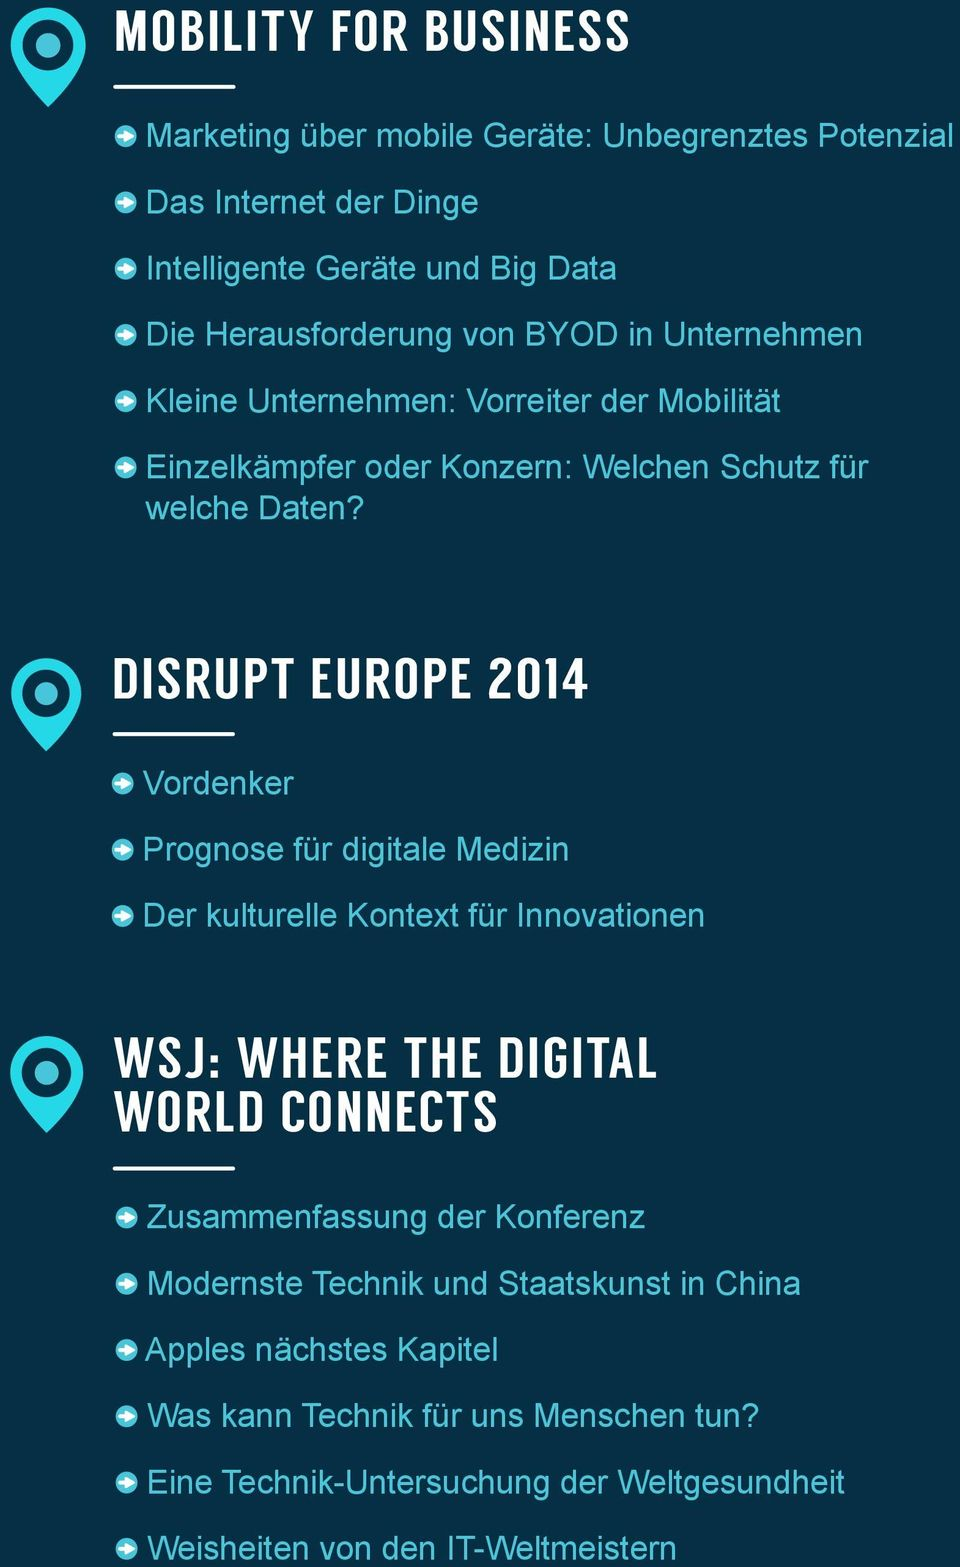 DISRUPT EUROPE 2014 Vordenker Prognose für digitale Medizin Der kulturelle Kontext für Innovationen WSJ: WHERE THE DIGITAL WORLD CONNECTS Zusammenfassung der